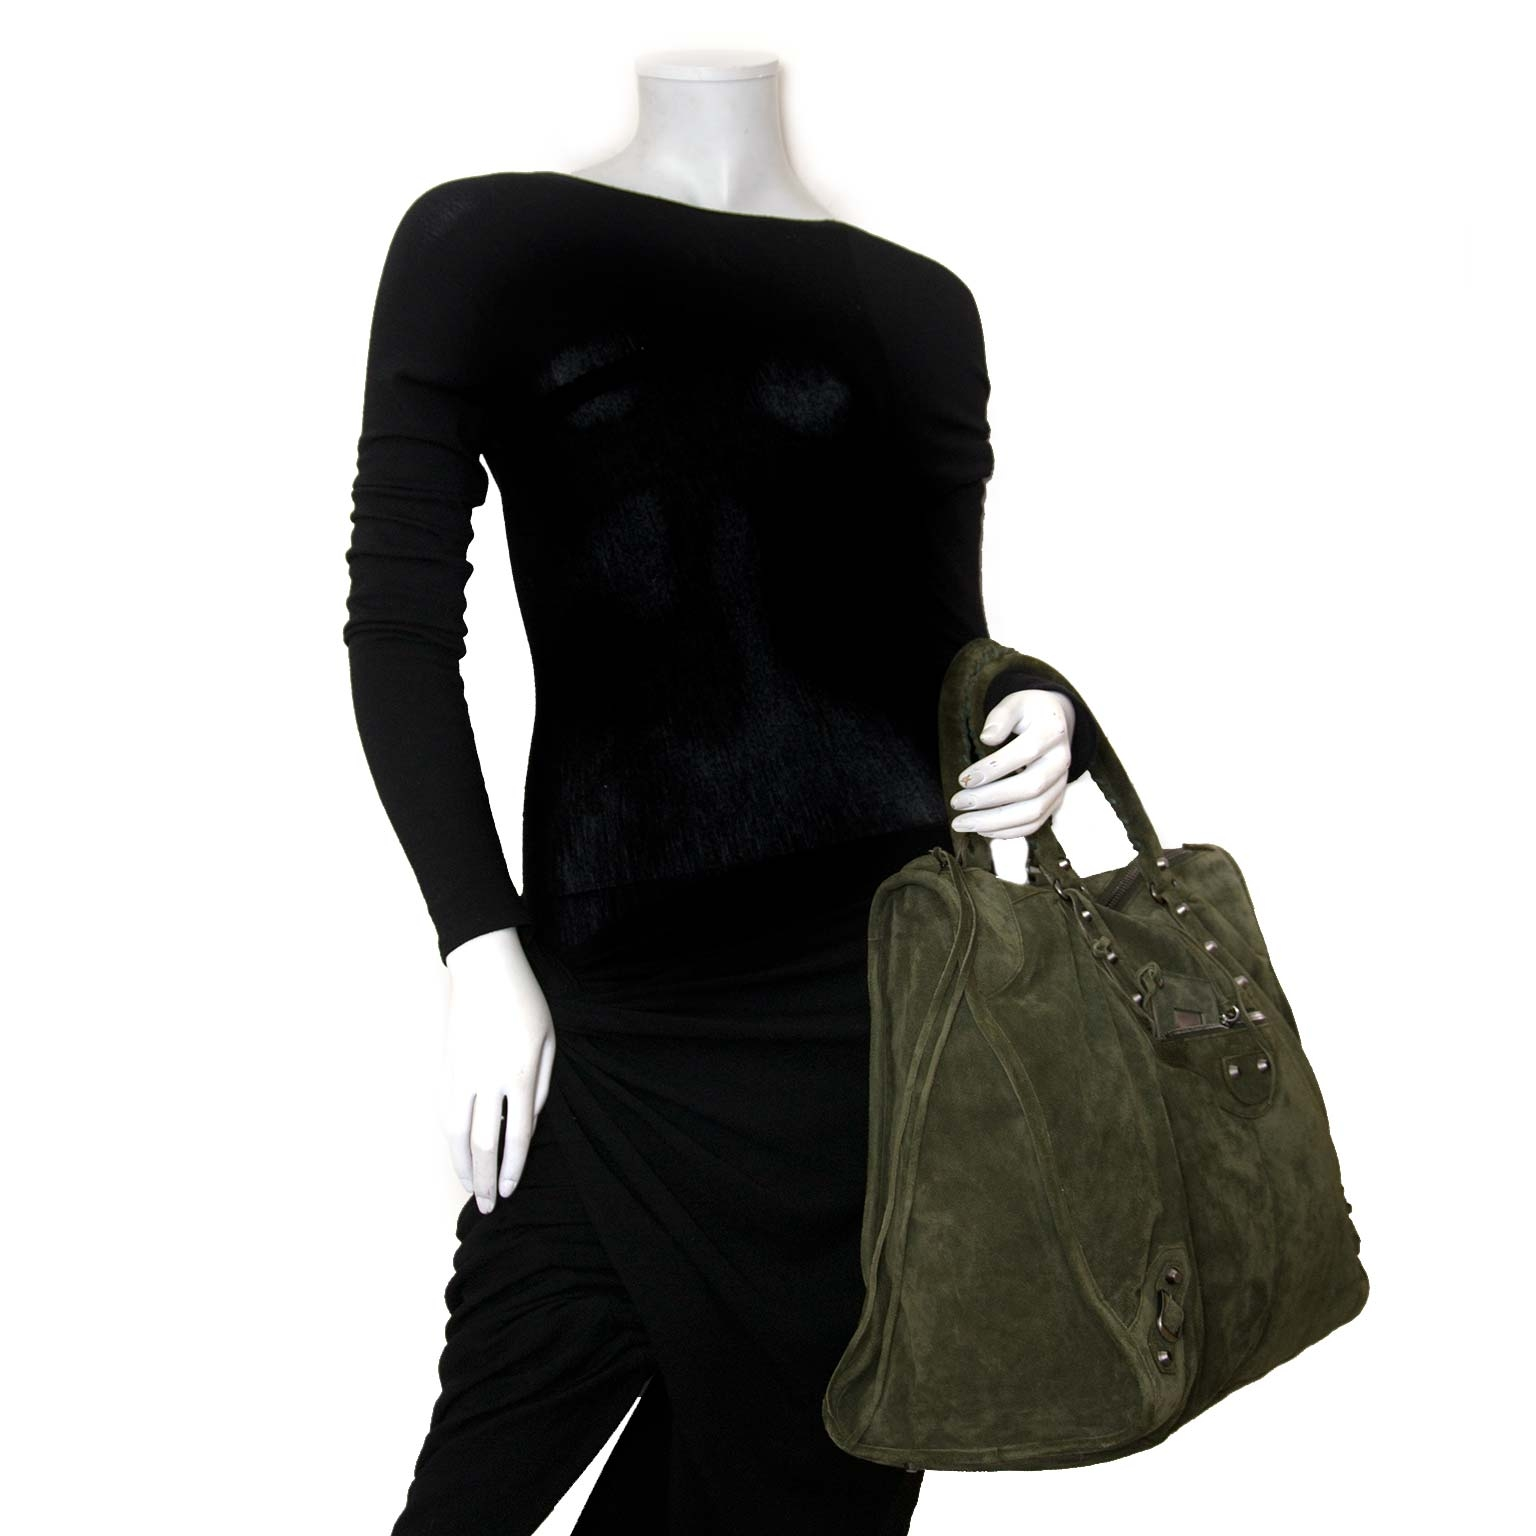 balenciaga khaki suede city weekender bag now for sale at labellov vintage fashion webshop belgium